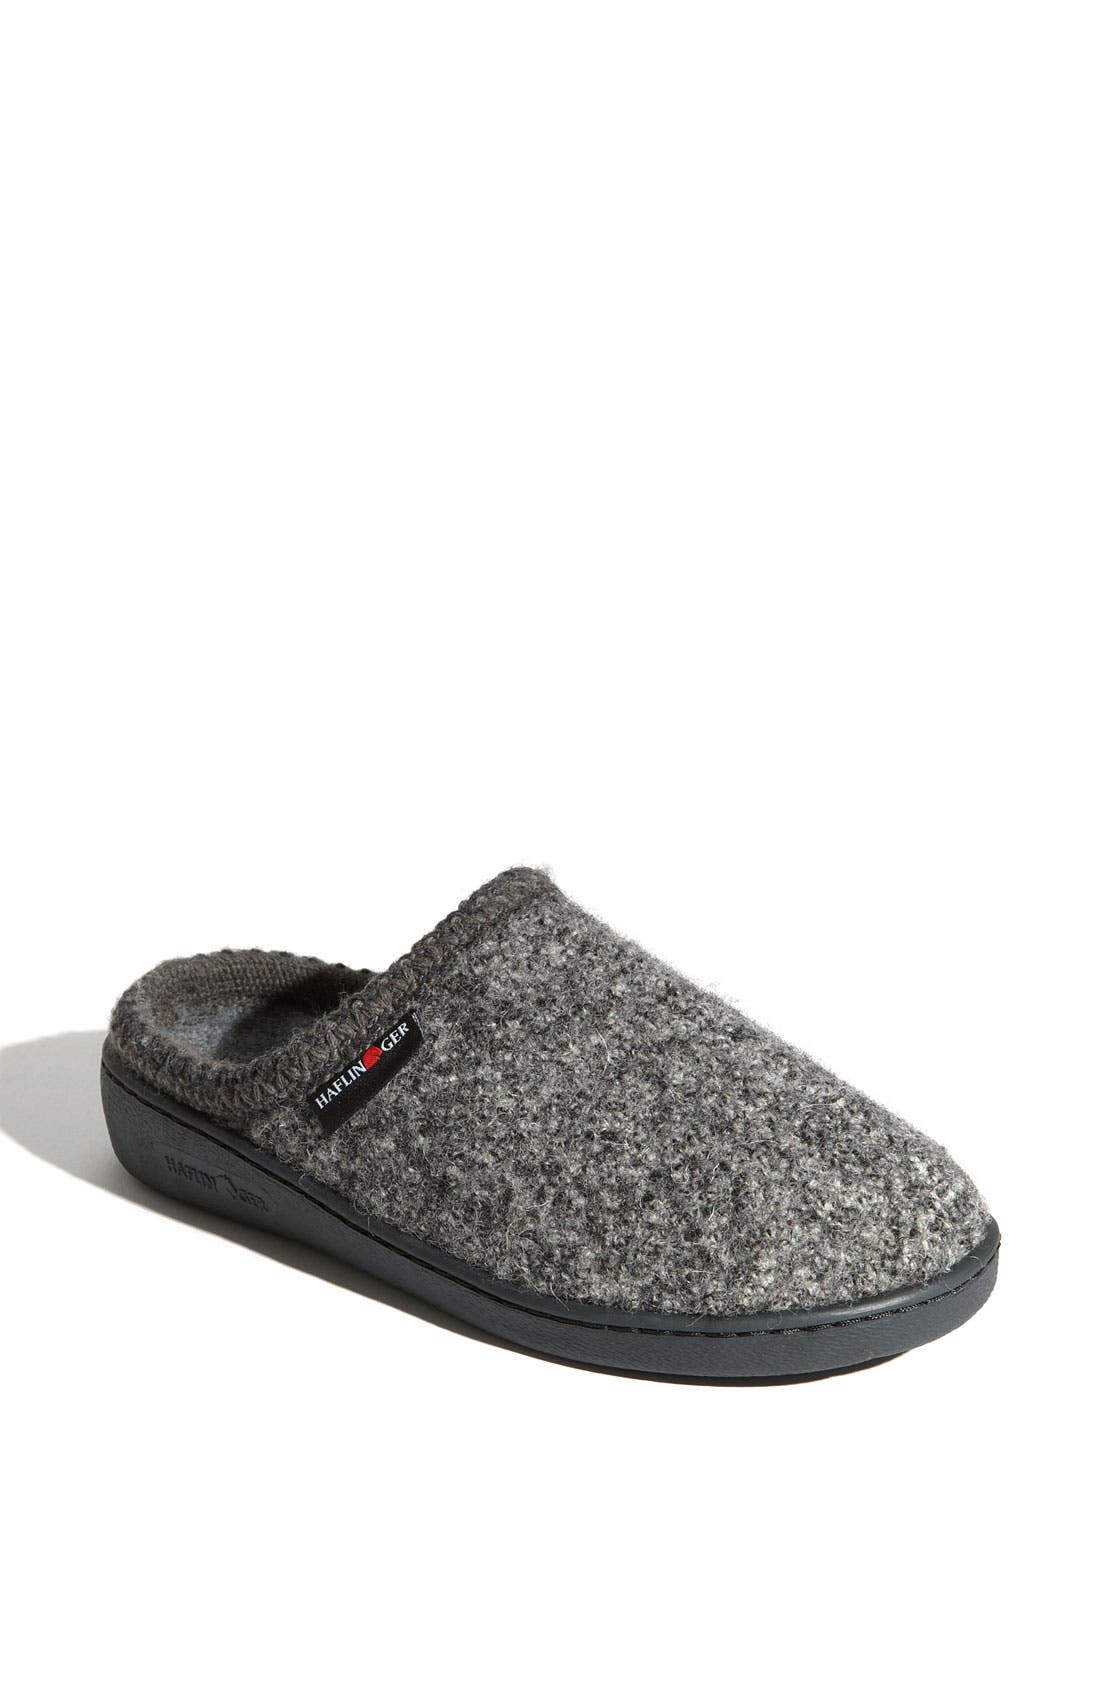 Alternate Image 1 Selected - Haflinger Hardsole Classic Slipper